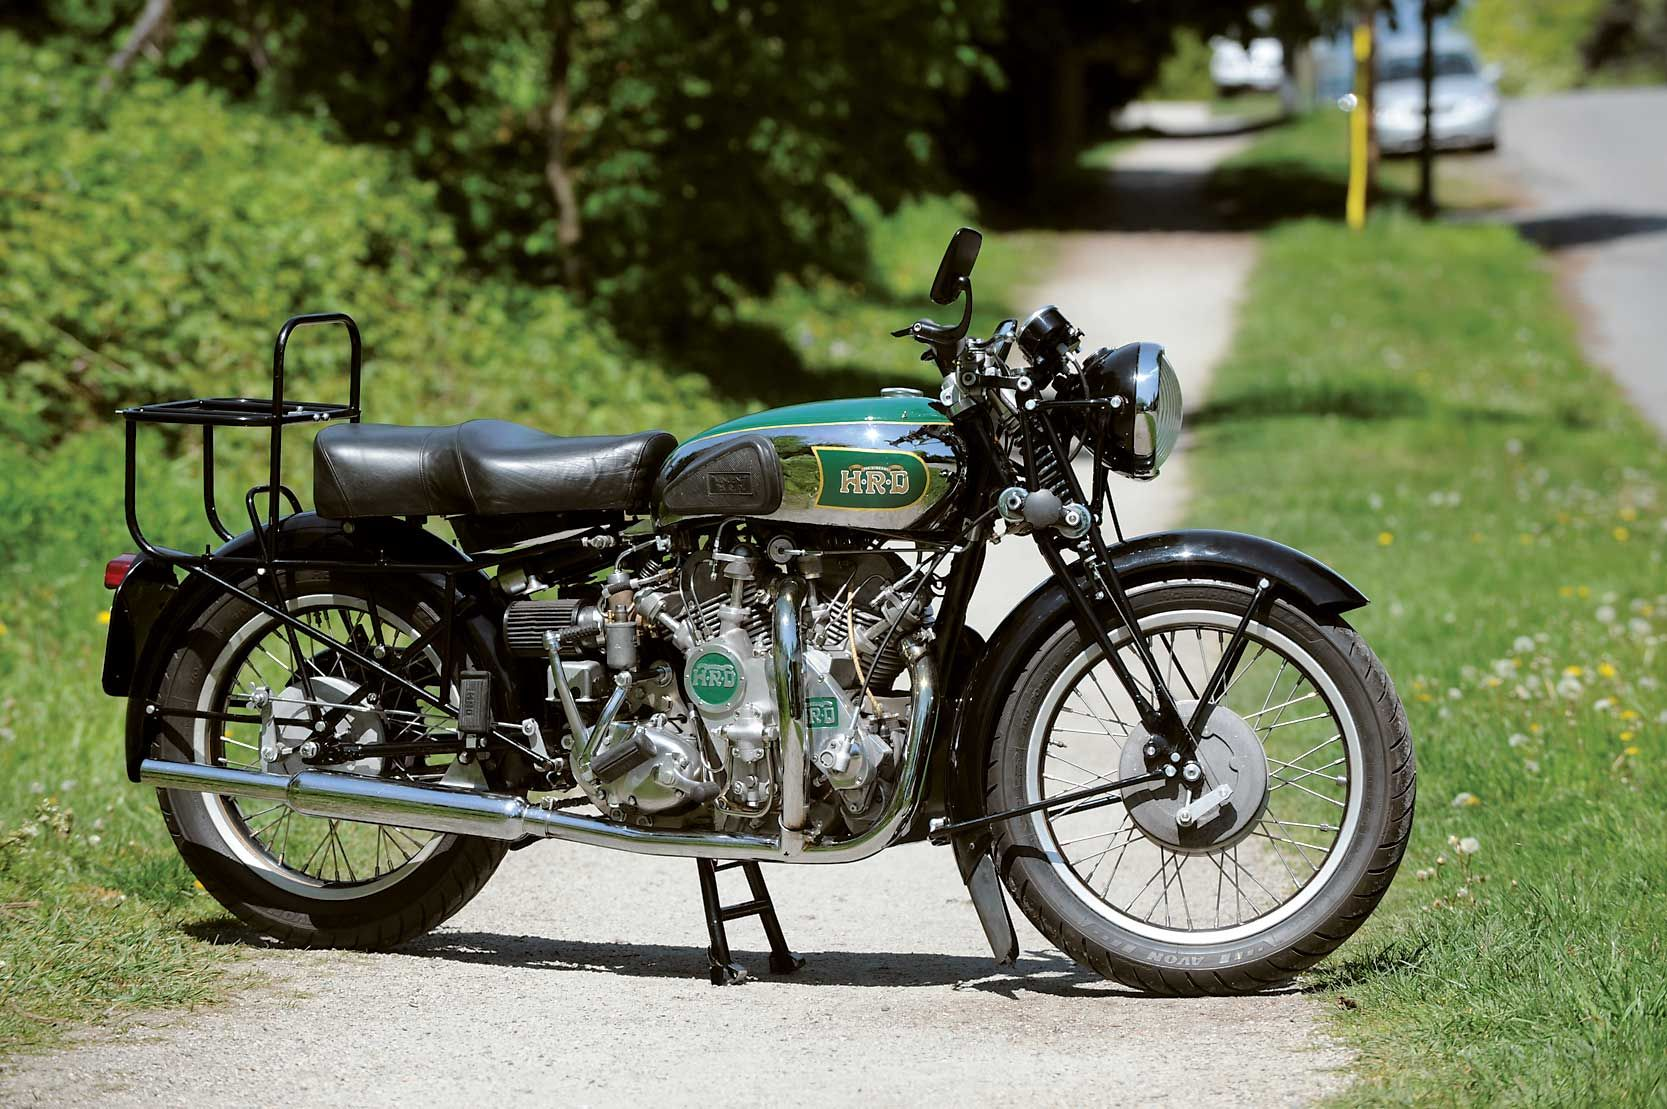 Motorcycle Classics Exciting And Evocative Articles And Photographs Of The Most Brilliant Unusual And Popular Motorcycles Ever Made British Motorcycles Classic Motorcycles Motorcycle